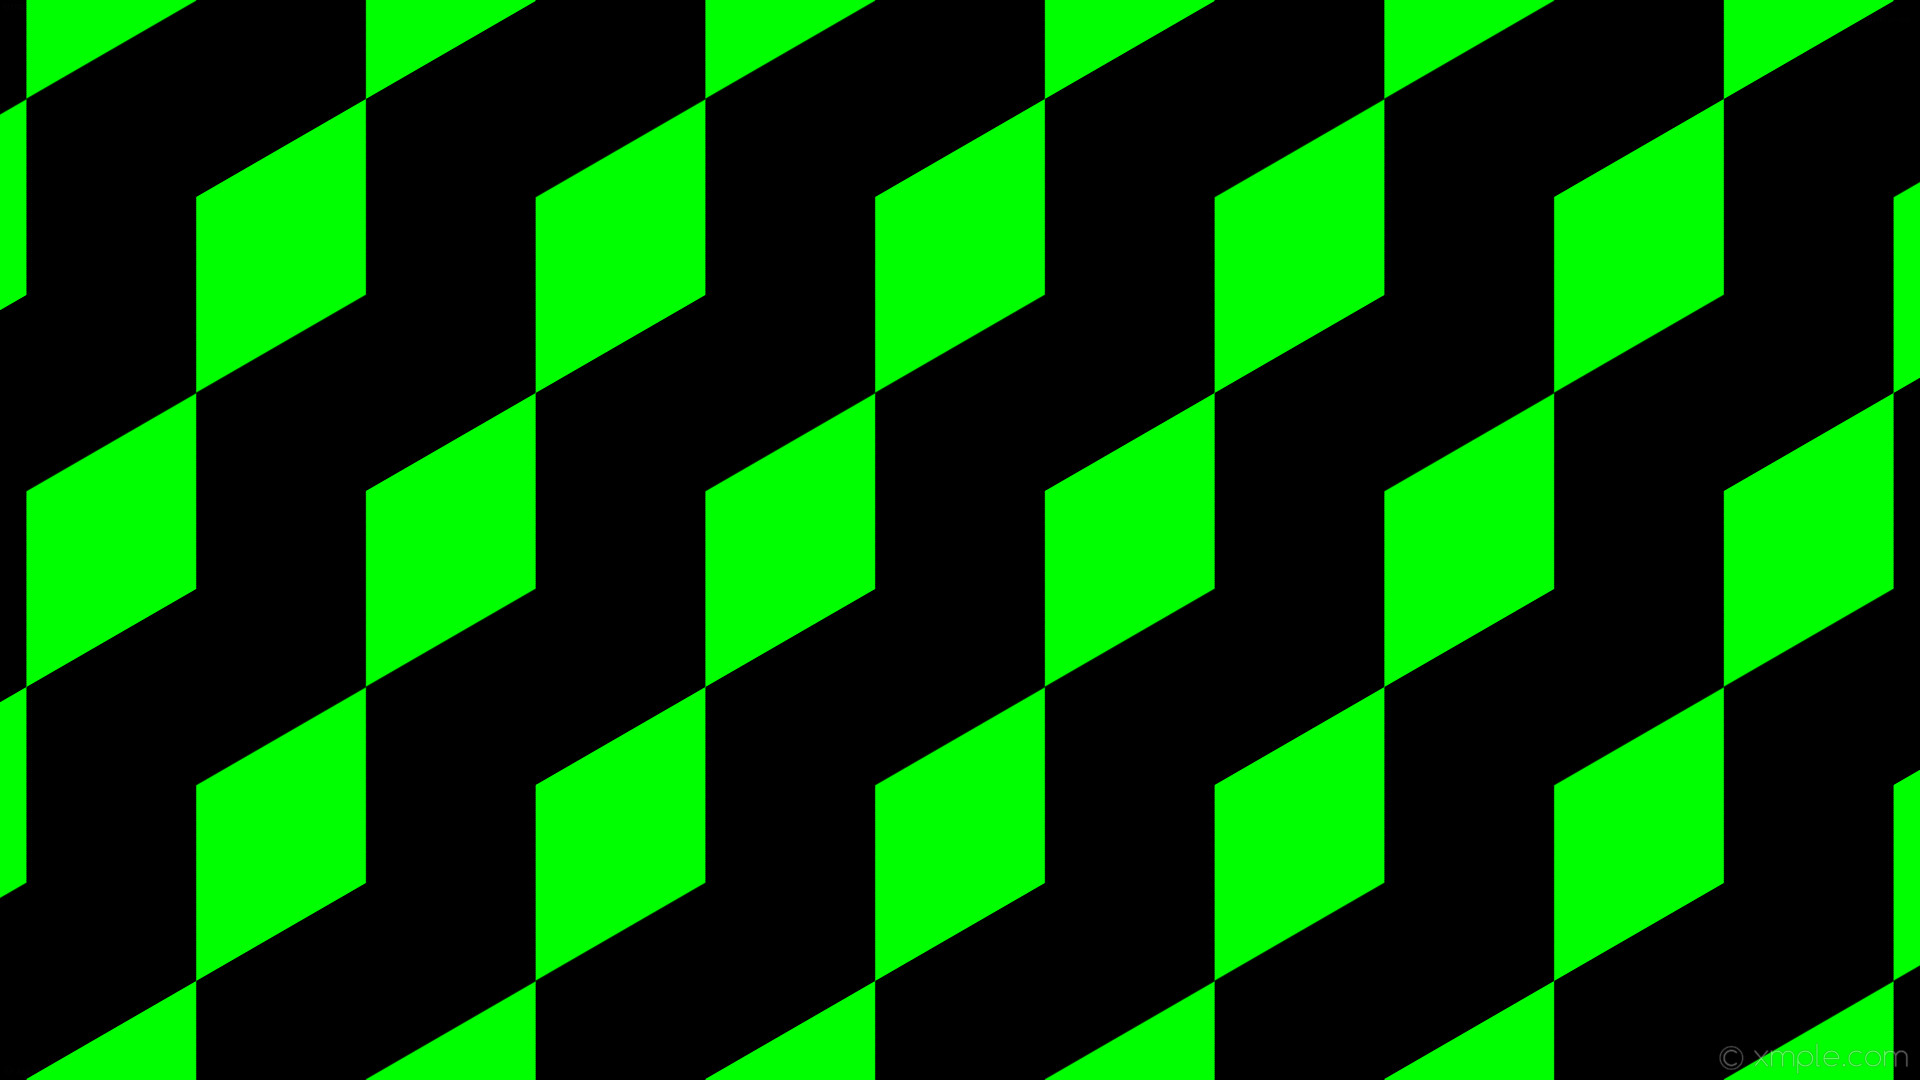 Lime Green and Black Wallpaper (76+ images)Black And Lime Green Backgrounds